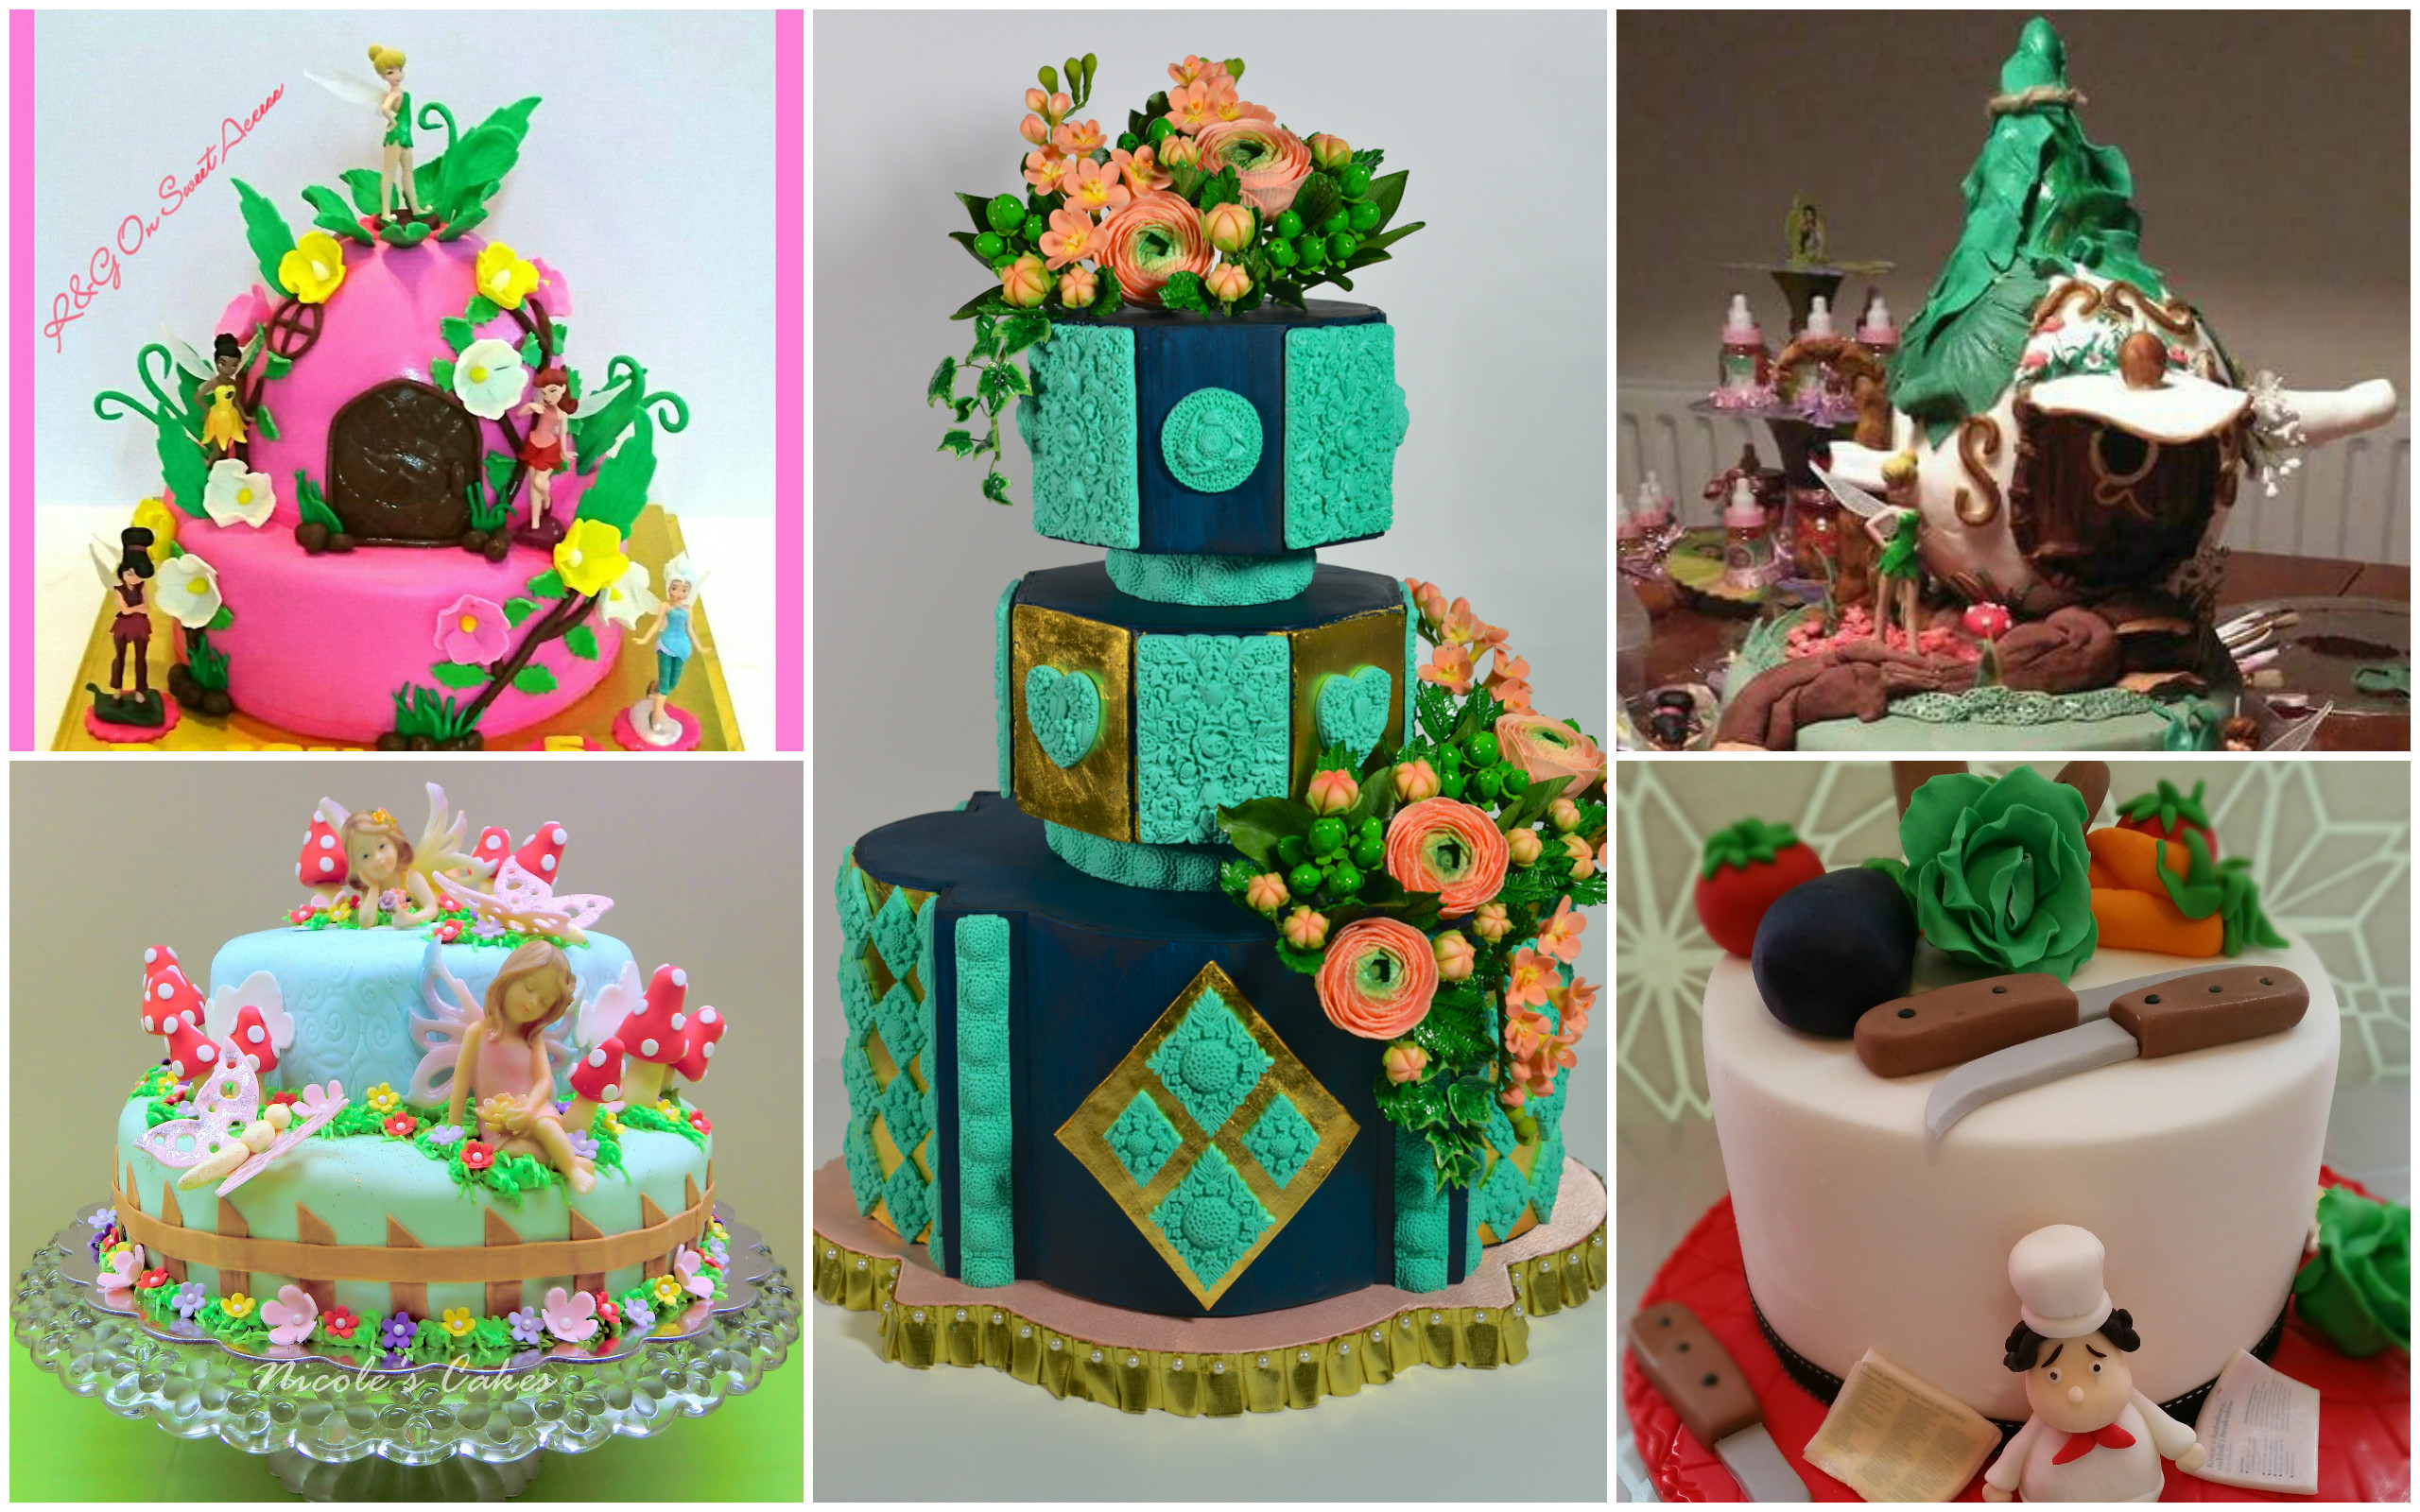 Cake Design Competition : Amazing Cake Ideas For June 2016: A Fun Filled Friendly ...